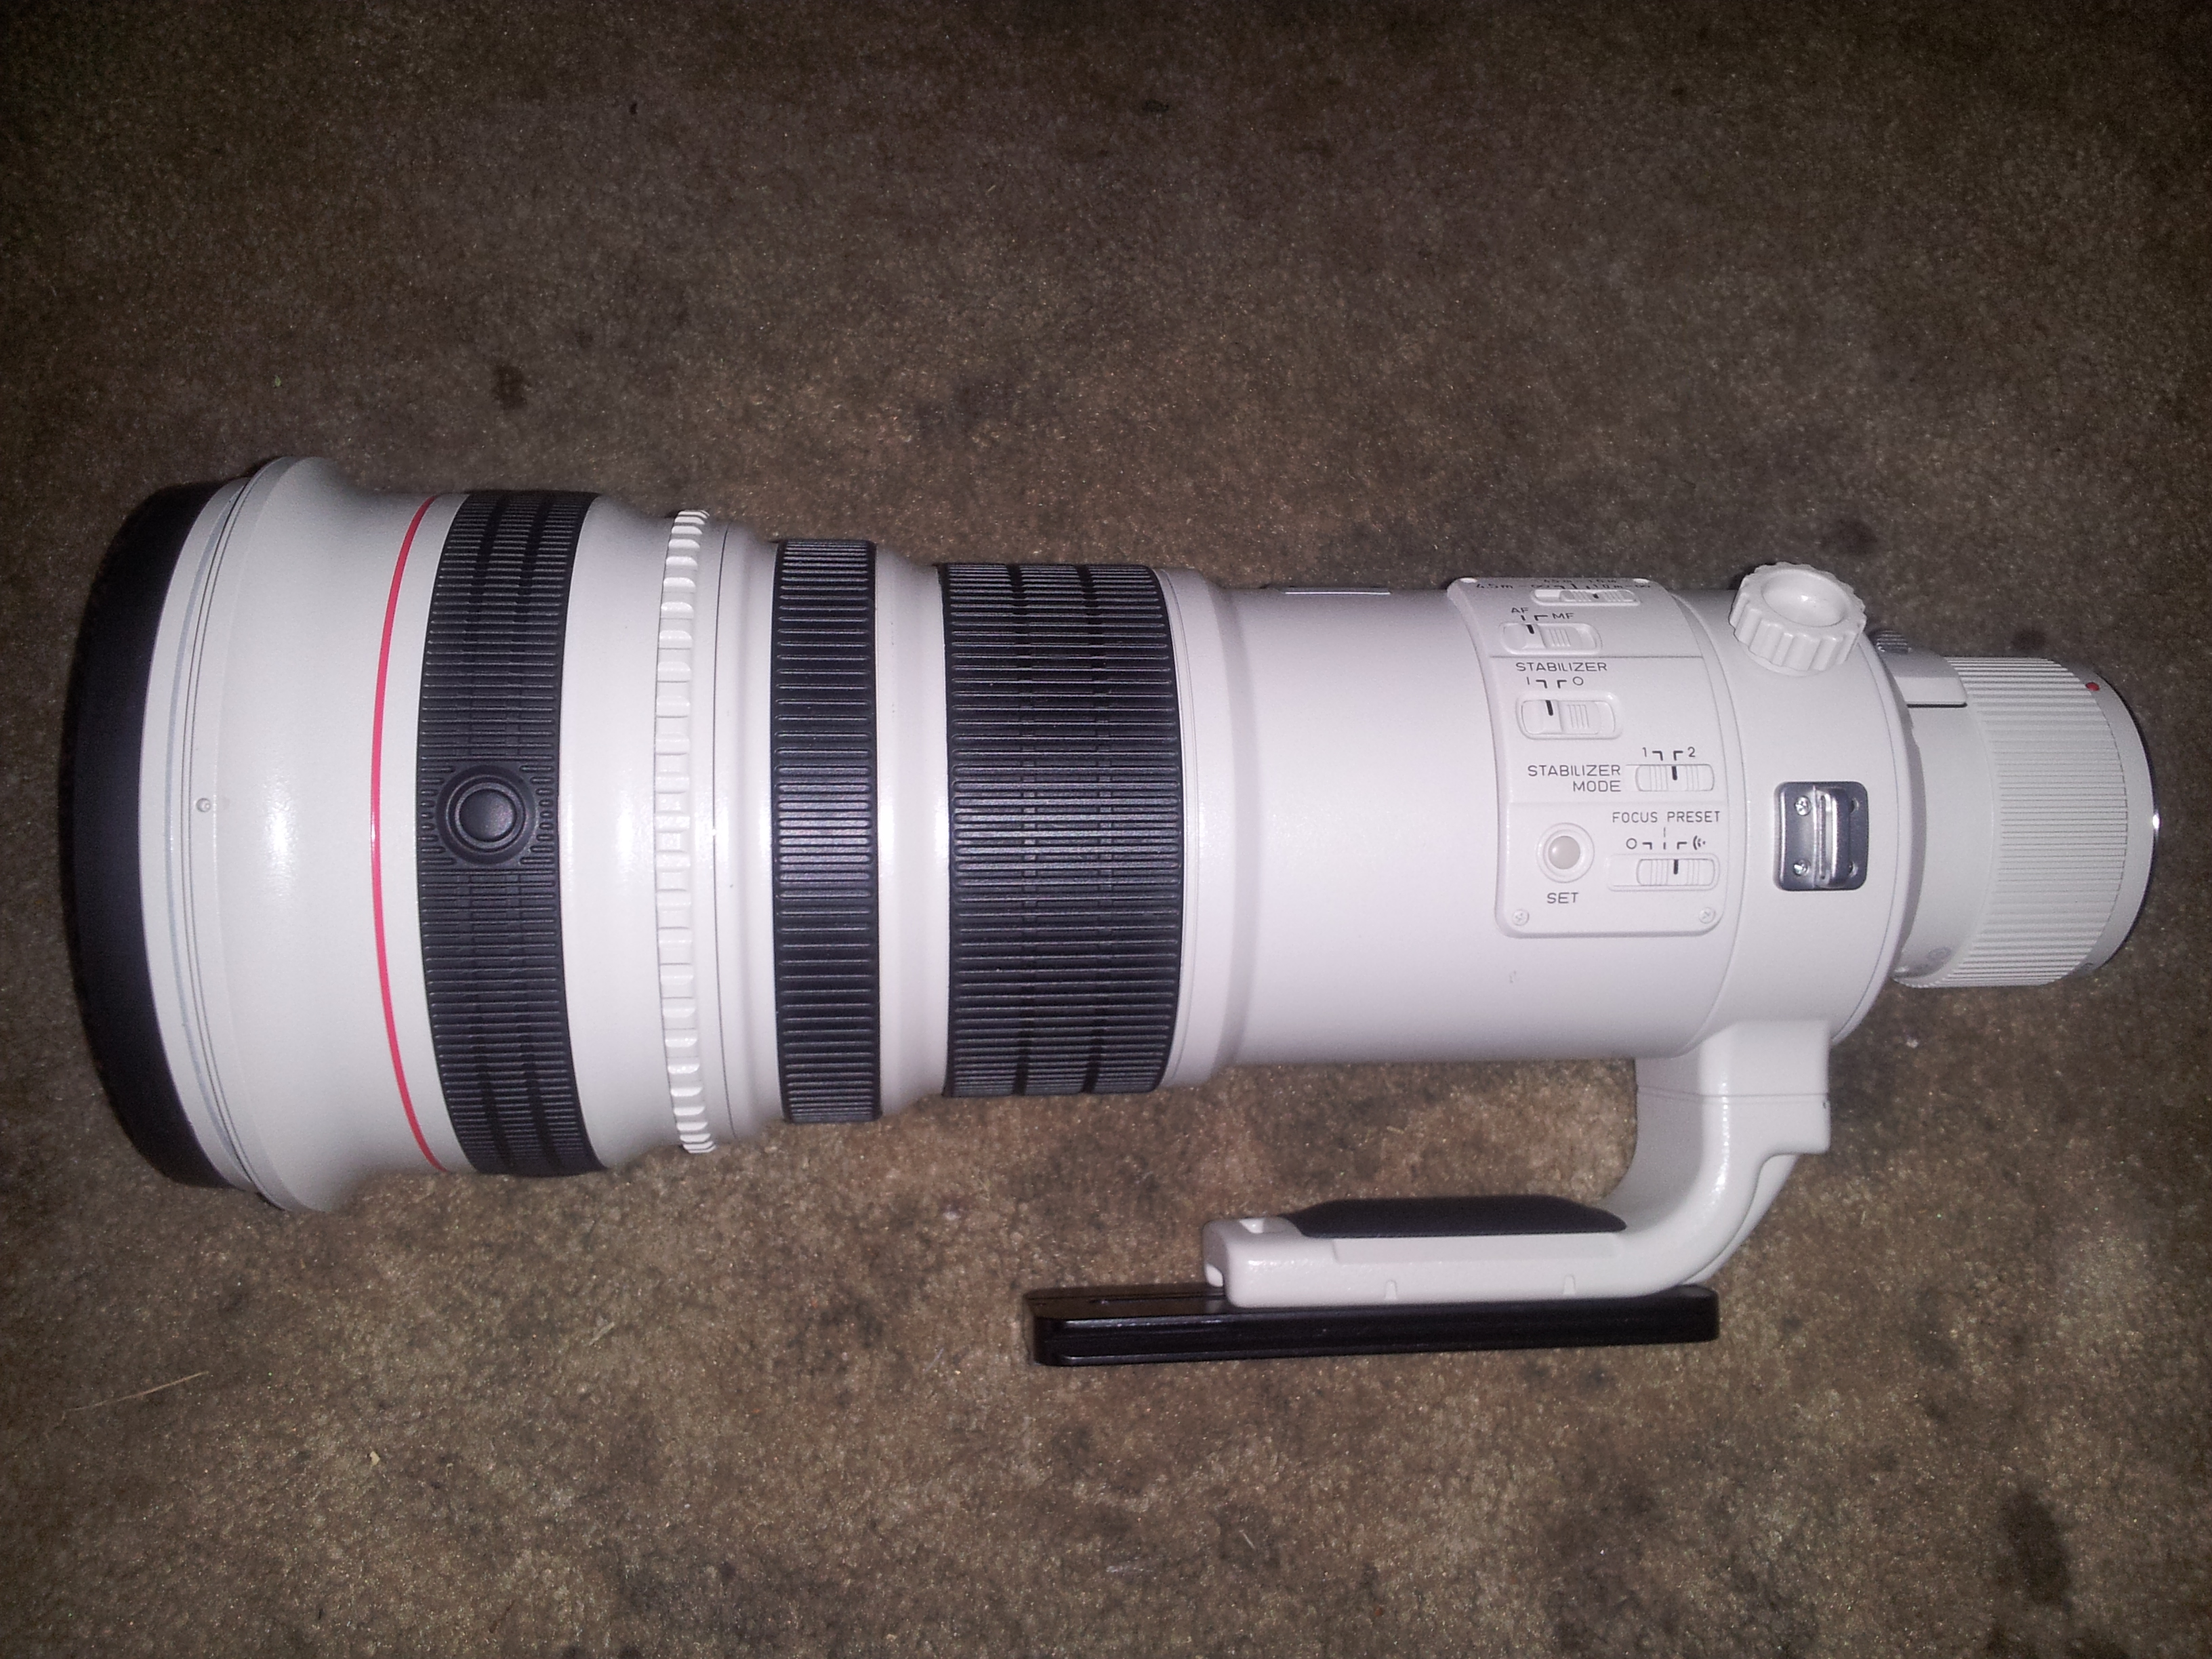 FOR SALE: Canon Lens EF 500mm 1:4 L